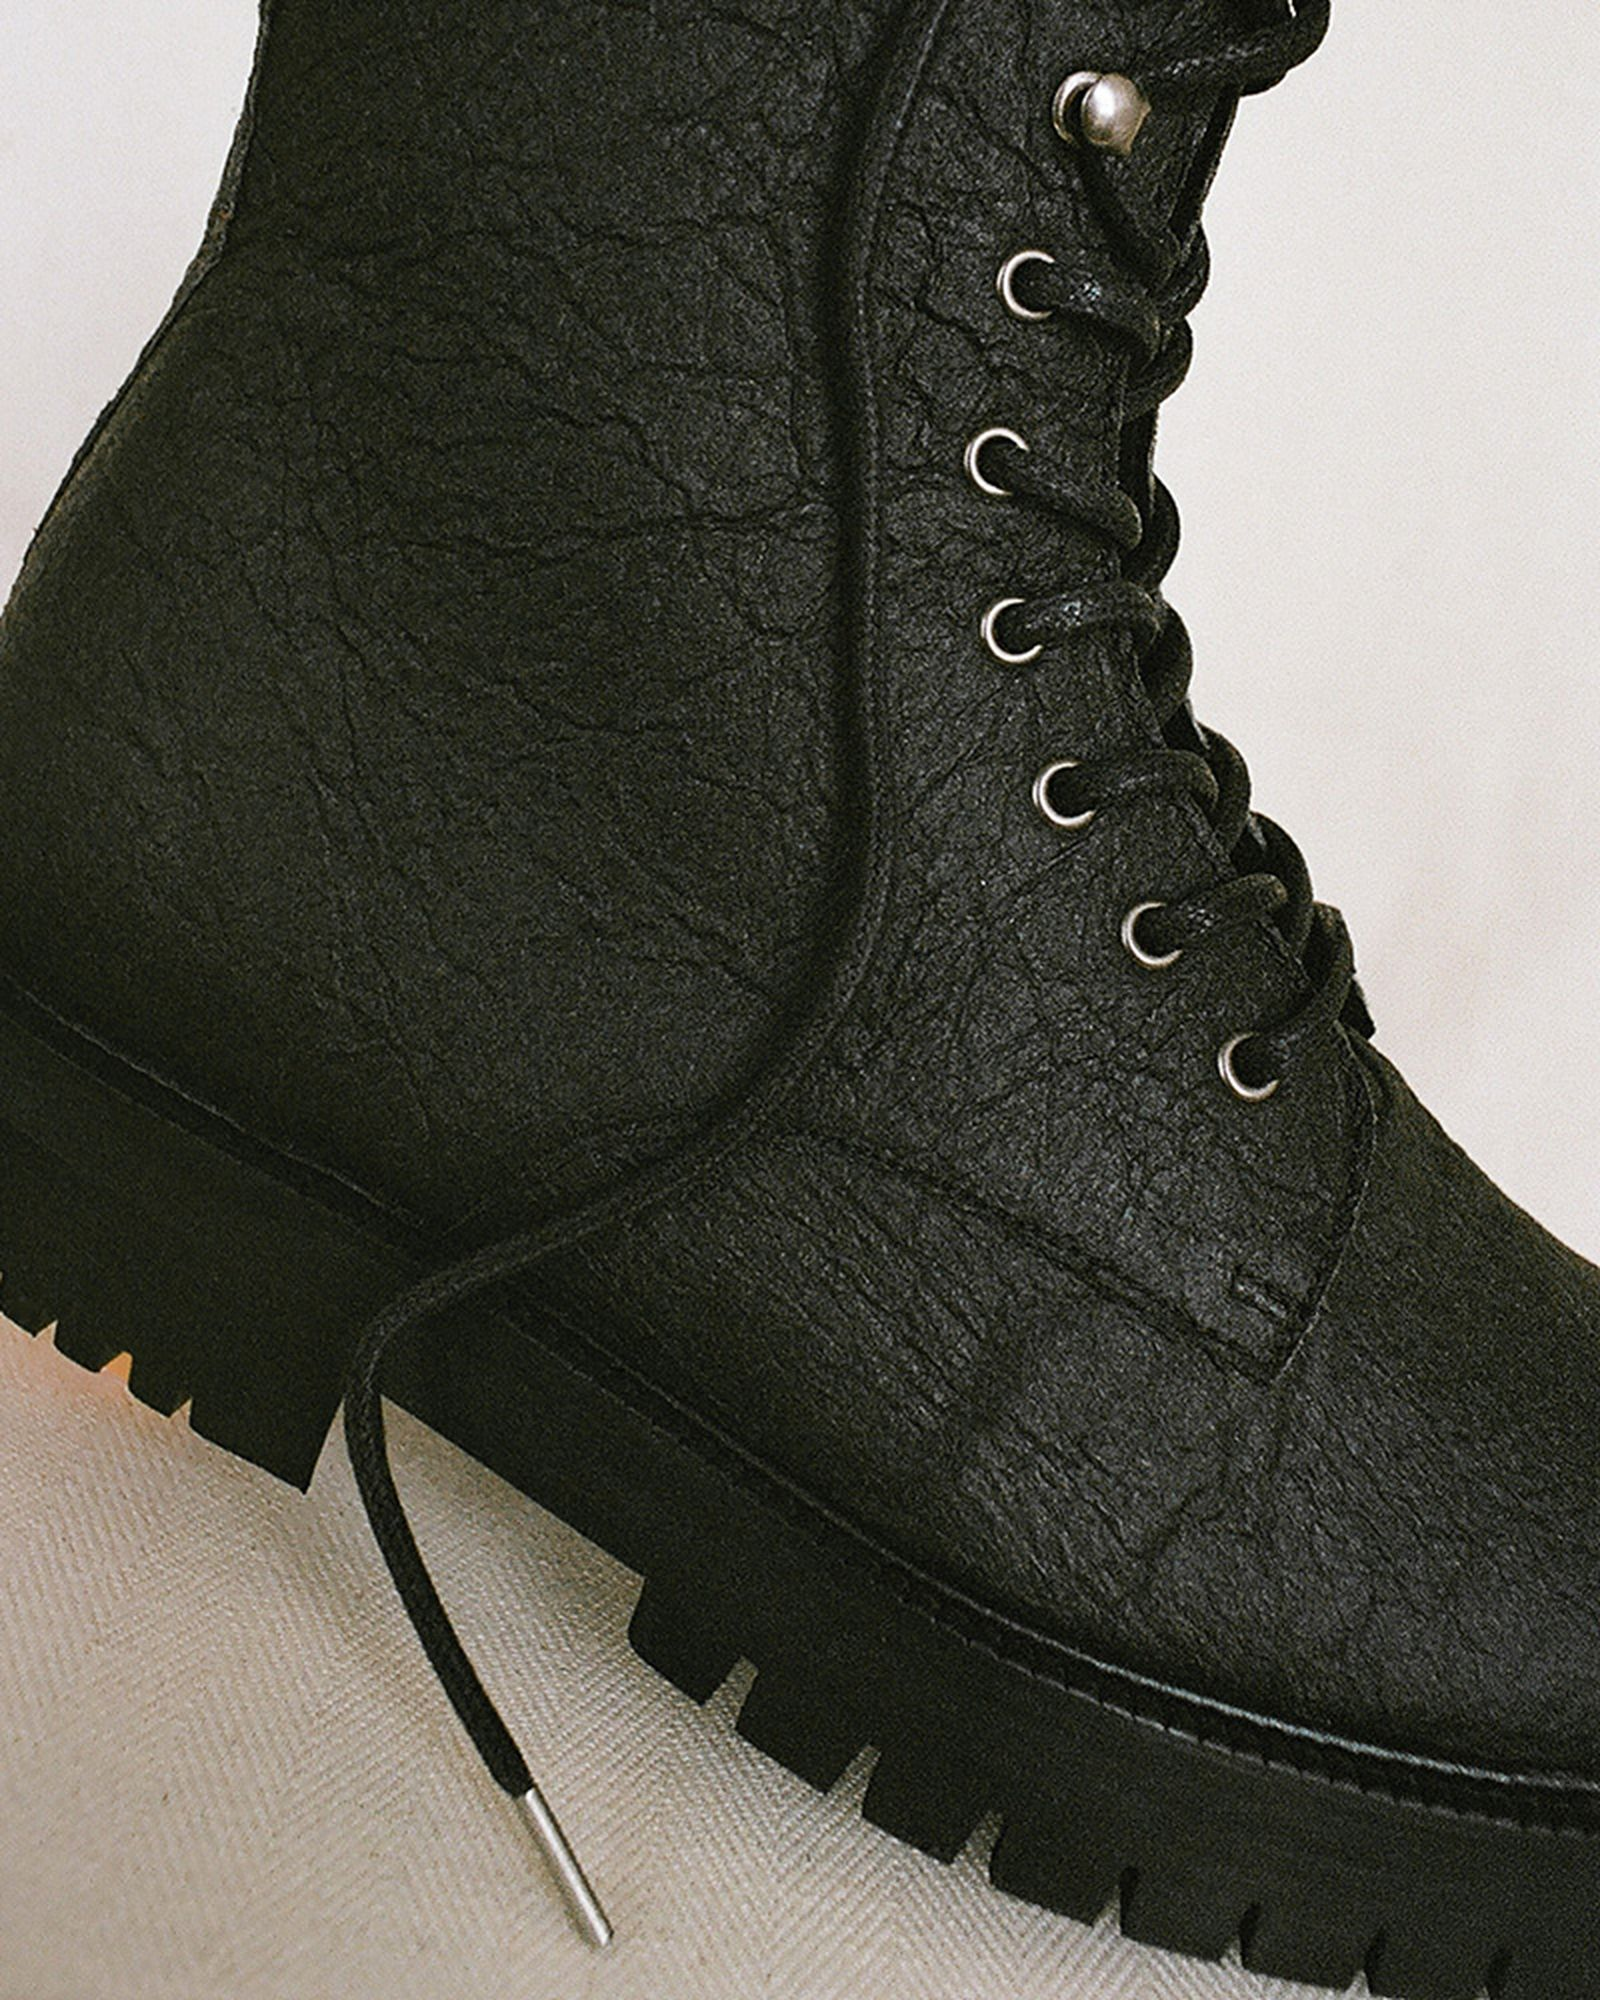 ground-cover-boots-price-release-date-13